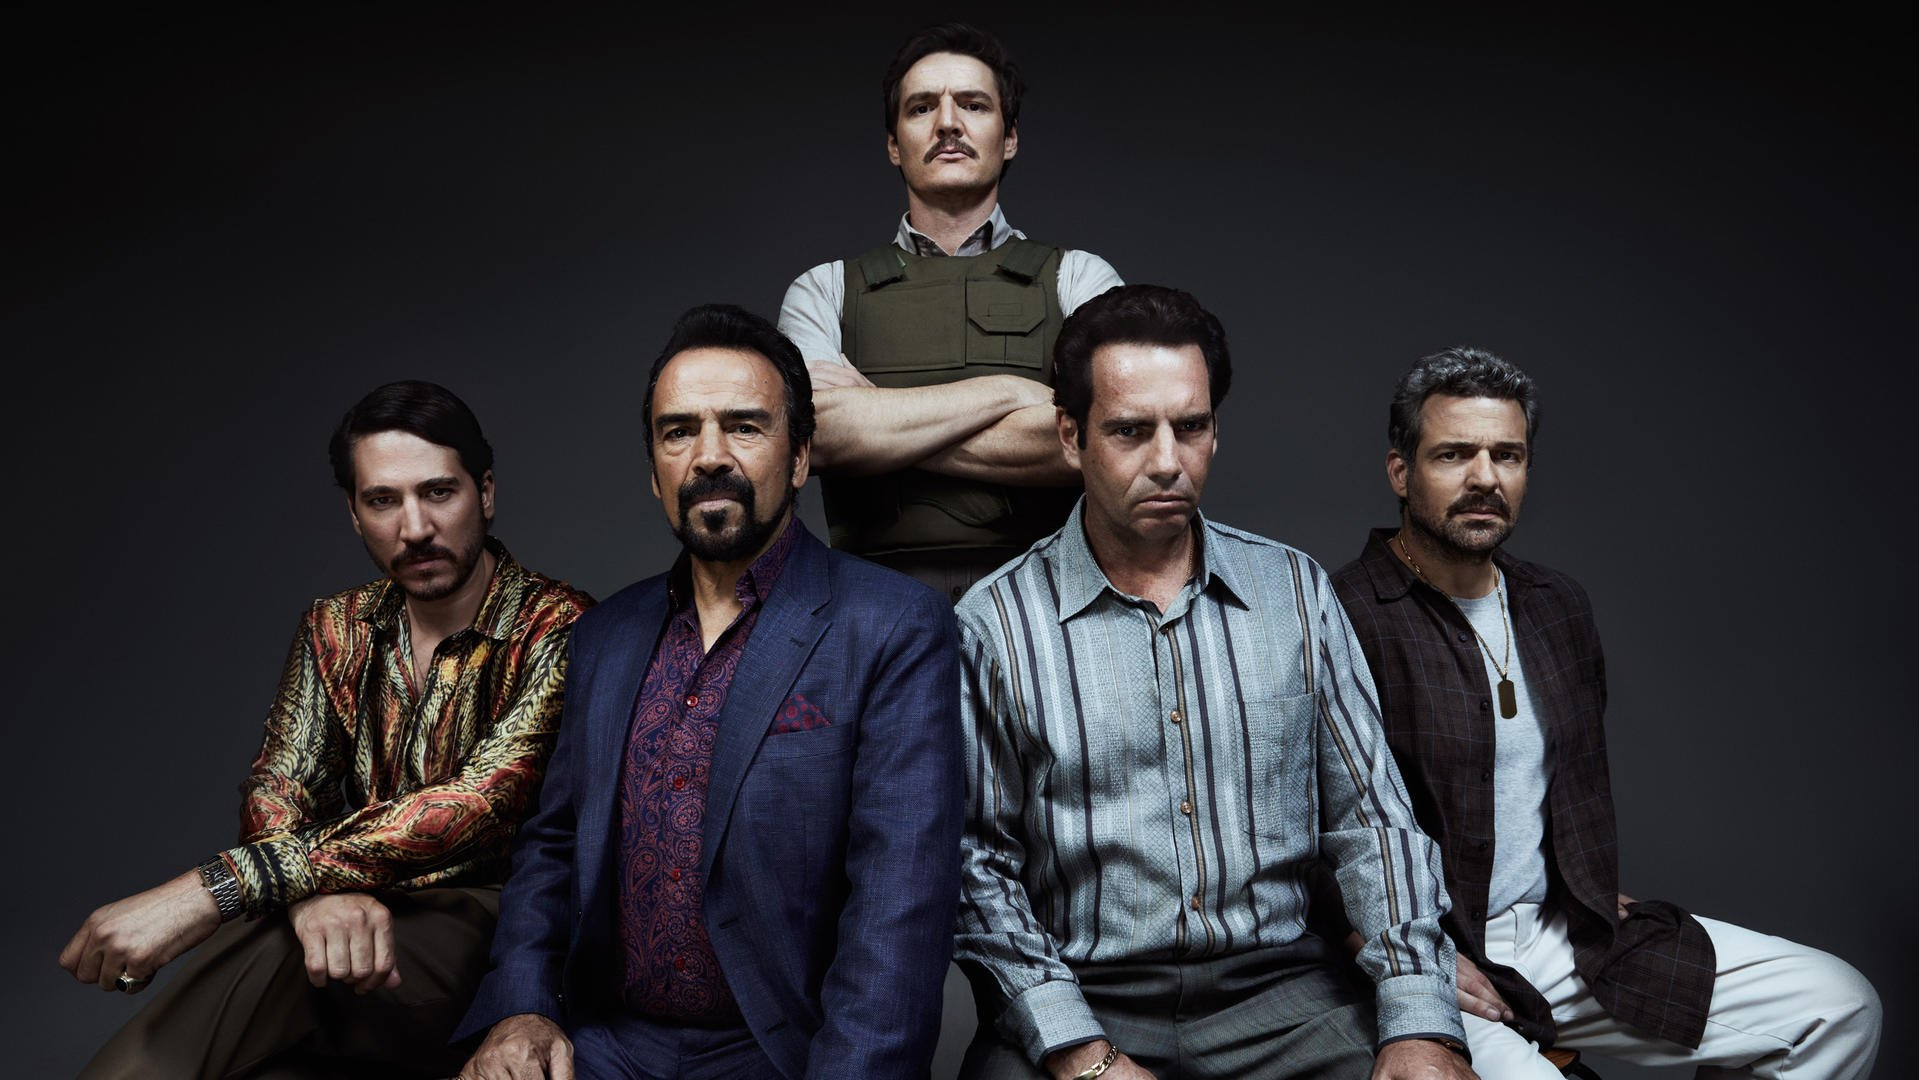 When one empire falls another will rise in its place. Narcos season 3 is now streaming. #Narcos https://t.co/9io0Vcto6I